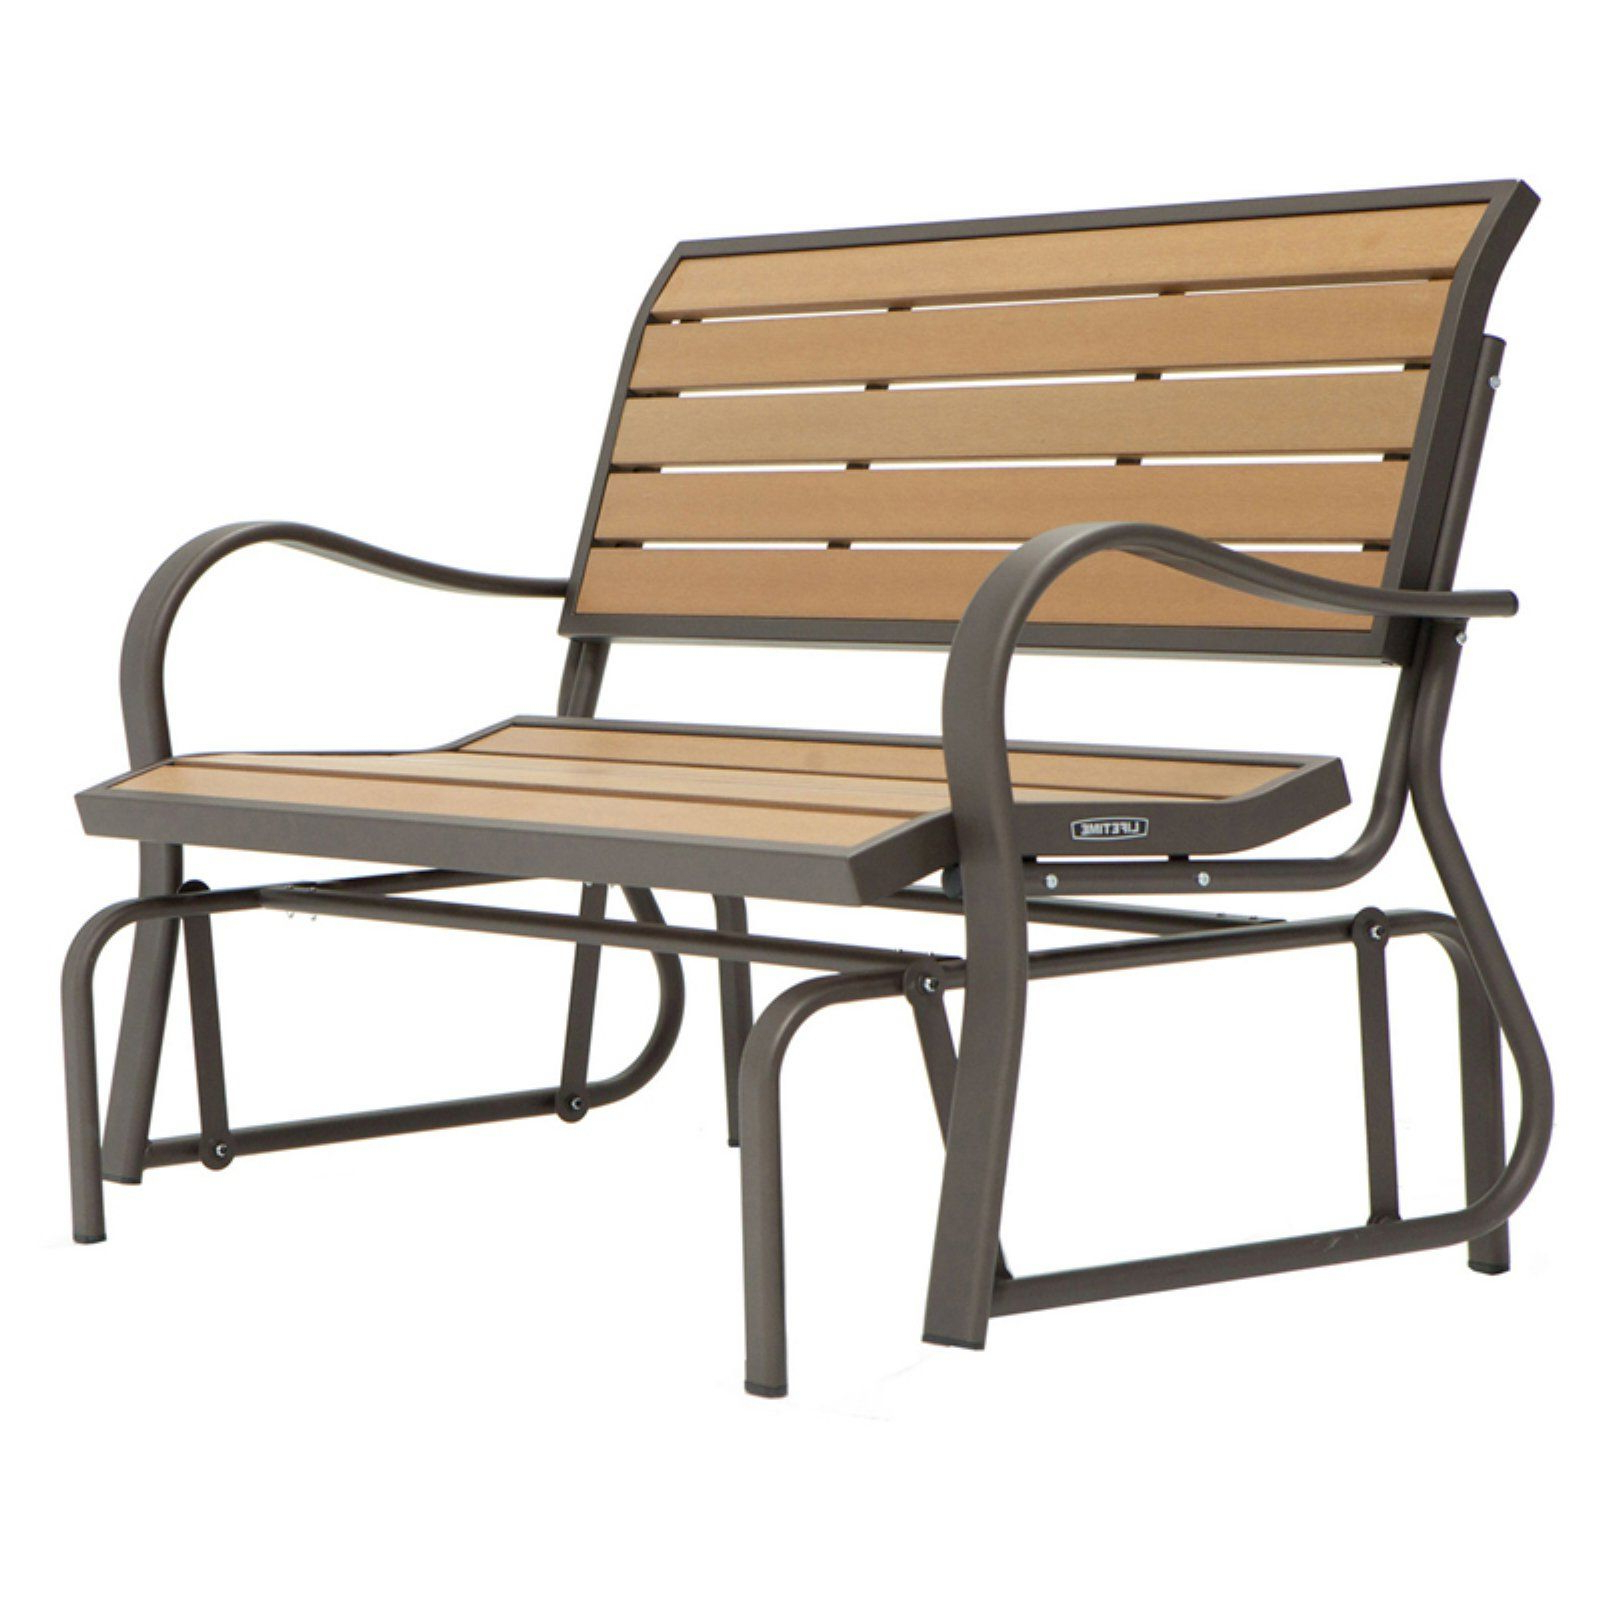 Newest Lifetime Products Wood Grain Outdoor Glider Loveseat Pertaining To Twin Seat Glider Benches (Gallery 25 of 31)